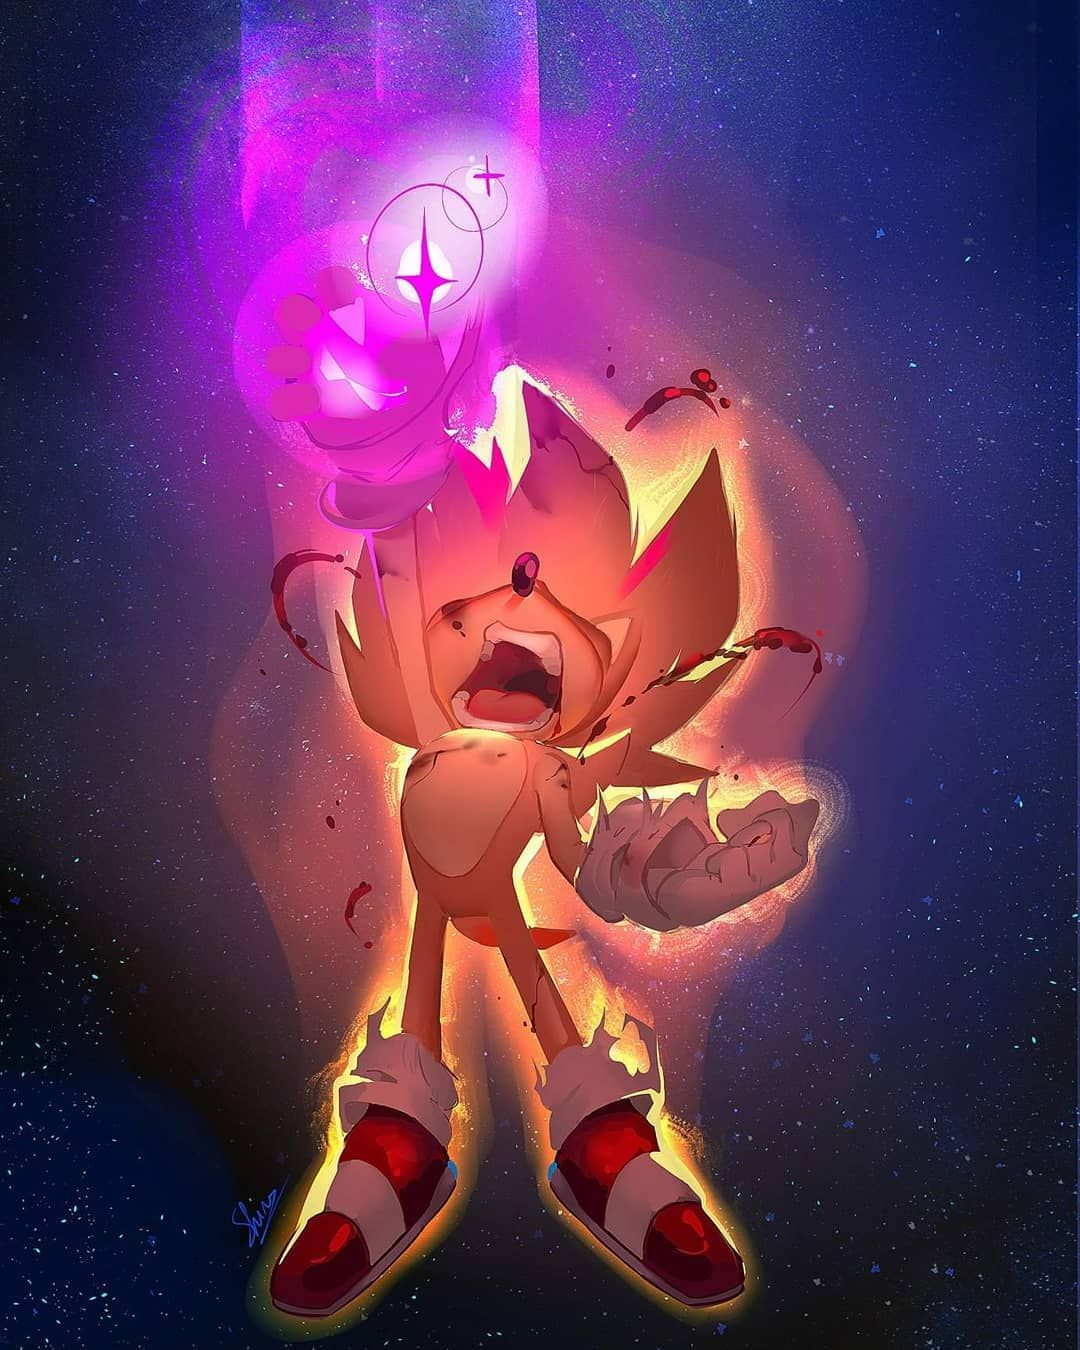 I Think I Just Found My New Phone Wallpaper Art By Johjoh45 Of Twitter Sonic Sonicthehedgehog Supersonic Hedgehog Art Sonic Fan Art Sonic The Hedgehog